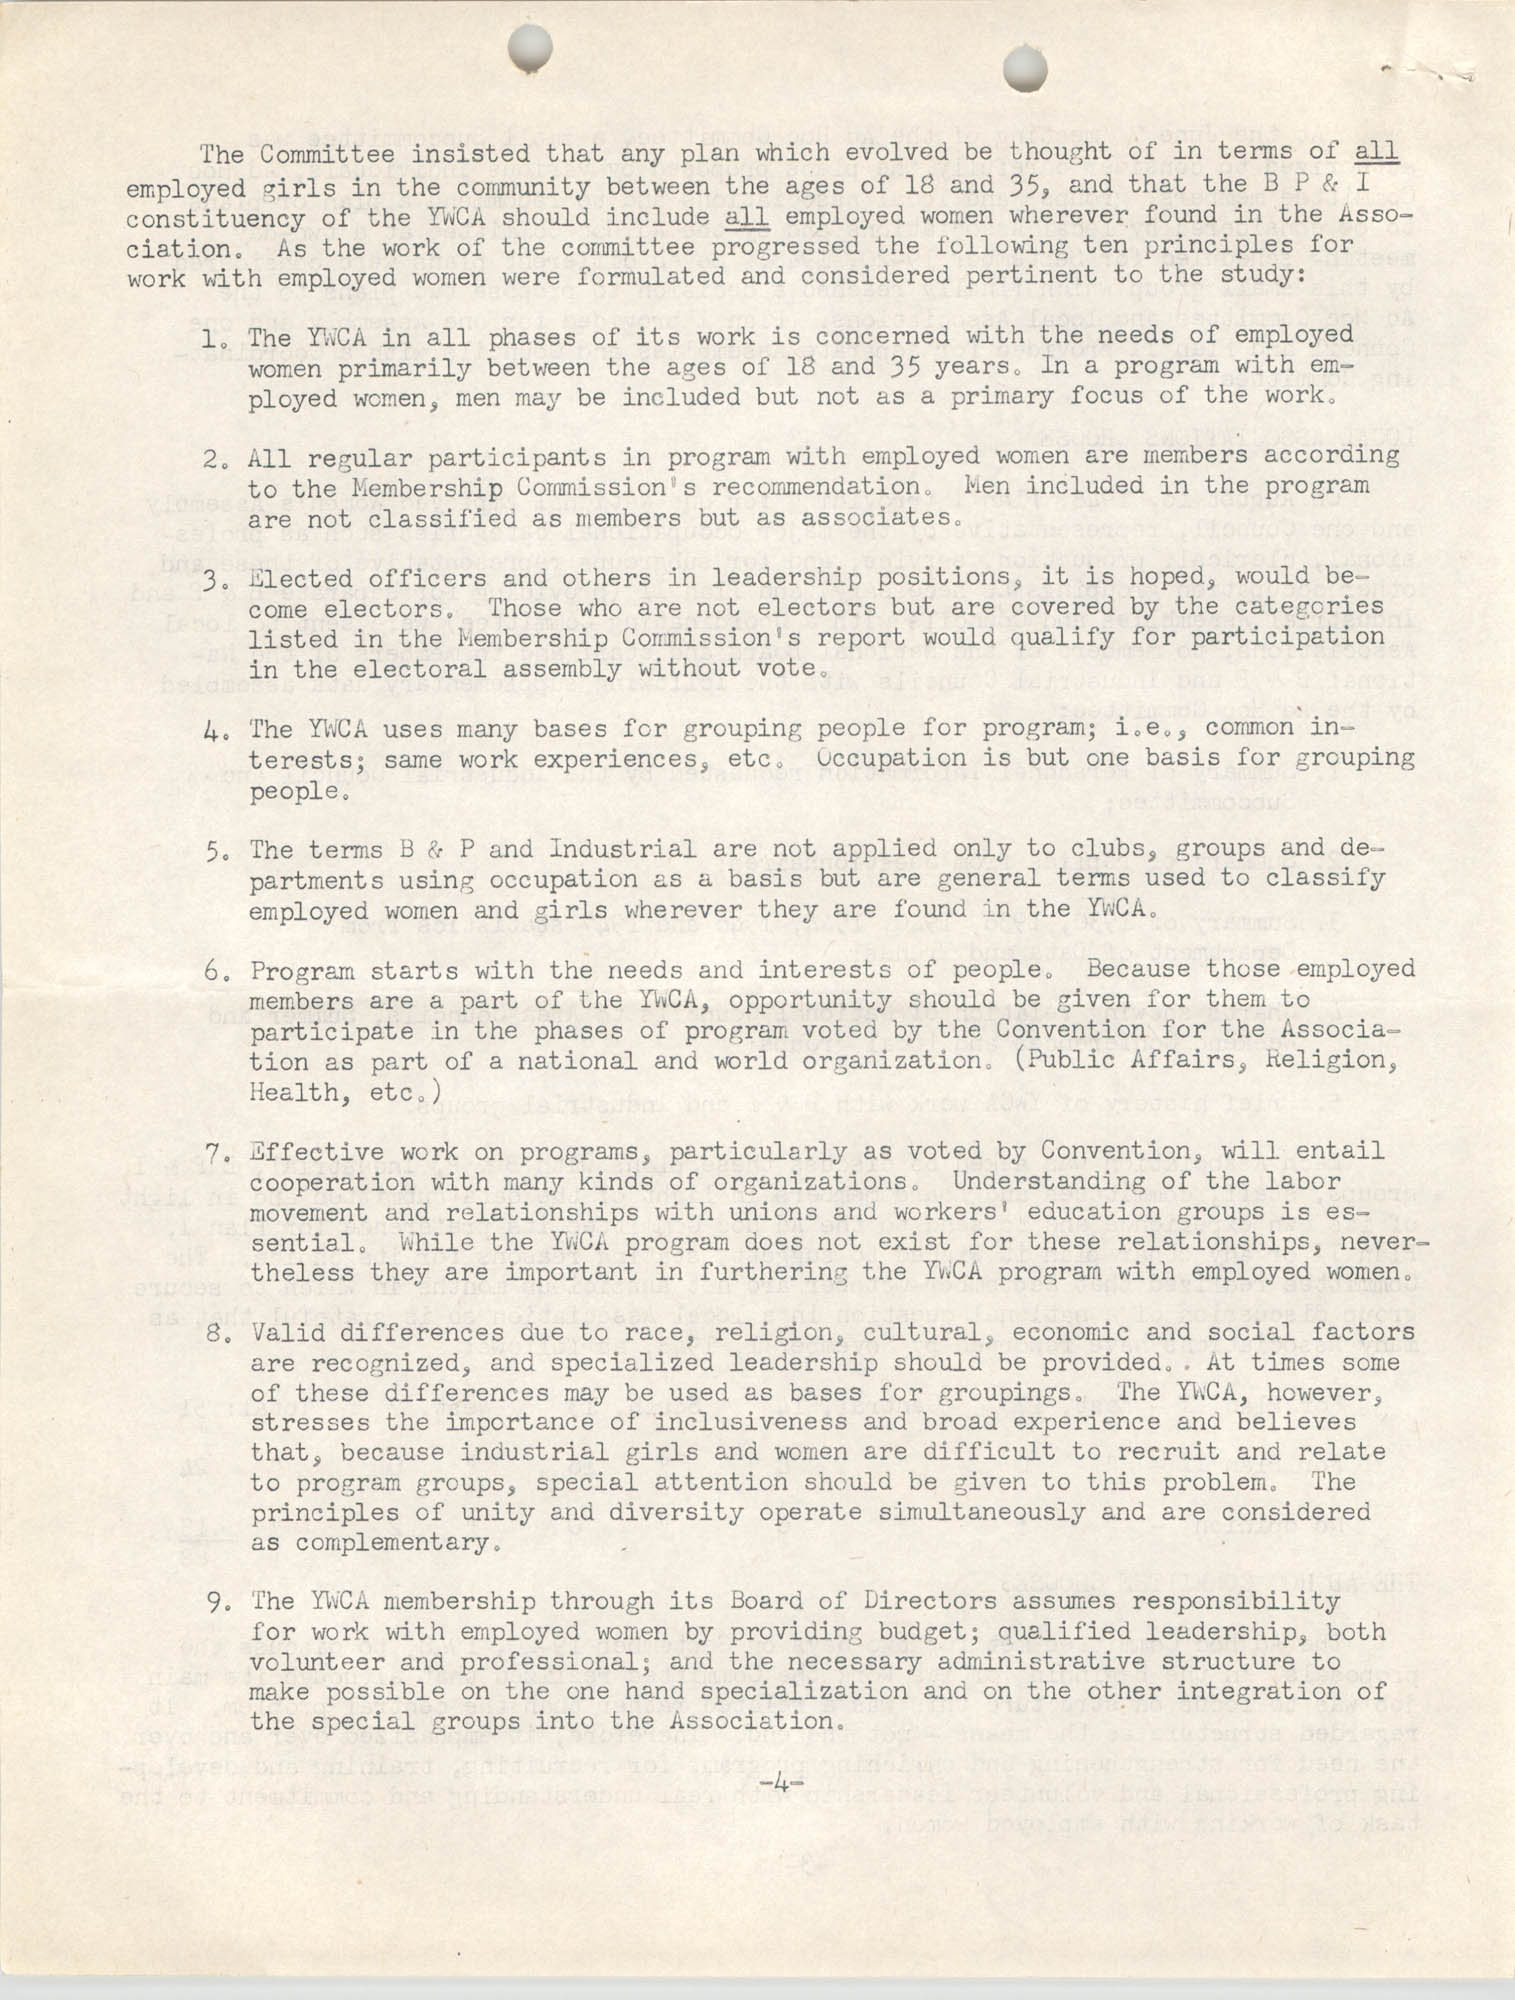 Division of Community Y.W.C.A.'s Committee Report, Page 4